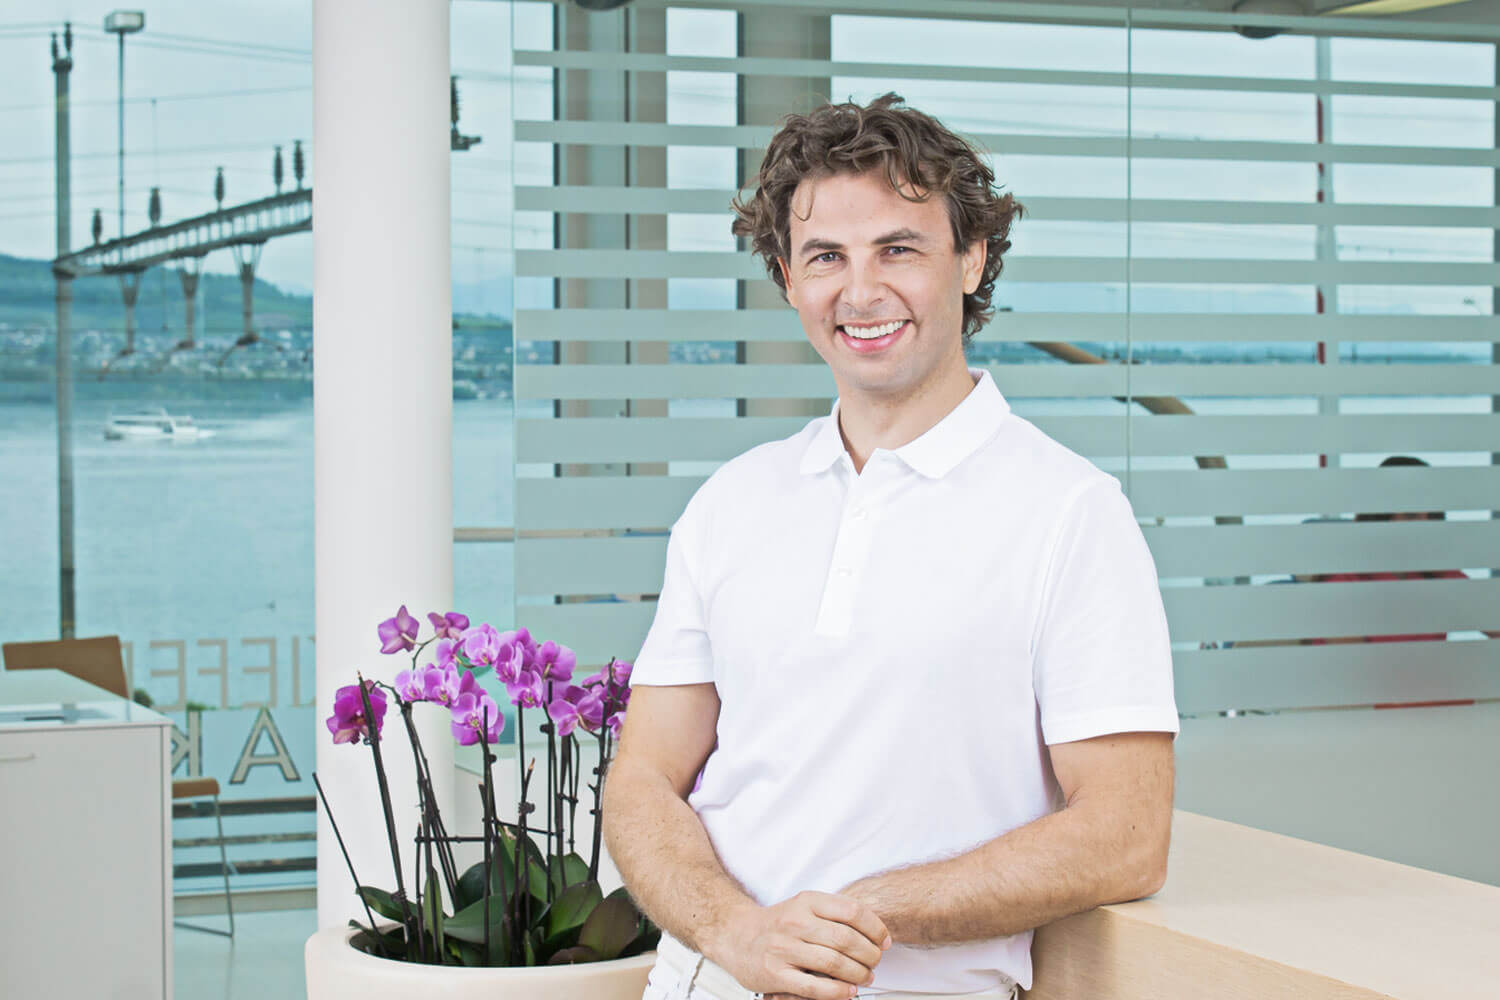 Corporate portrait of orthodontist Dr. med. dent. Alexander Dudic (PHD) in front of the treatment room overlooking lake Zurich.